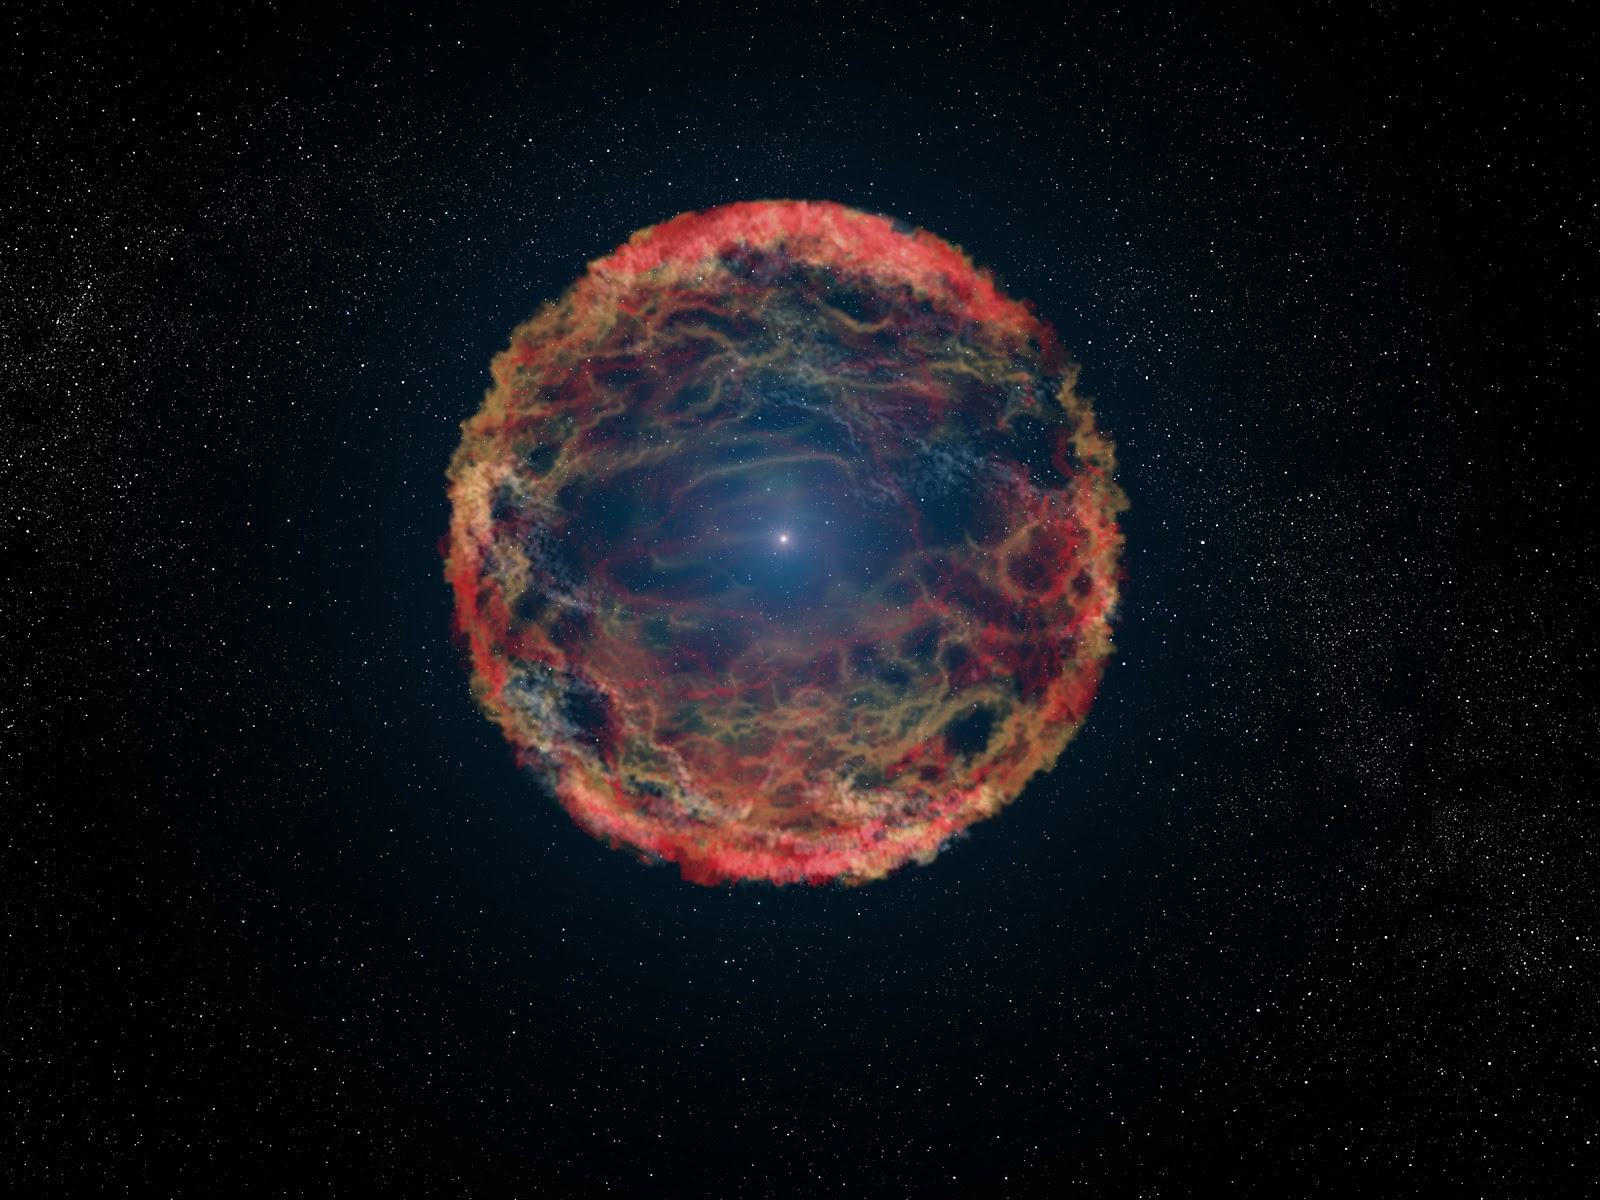 Artist's impression of a Supernova. Image Credit NASA, ESA, G. Bacon (STSci)